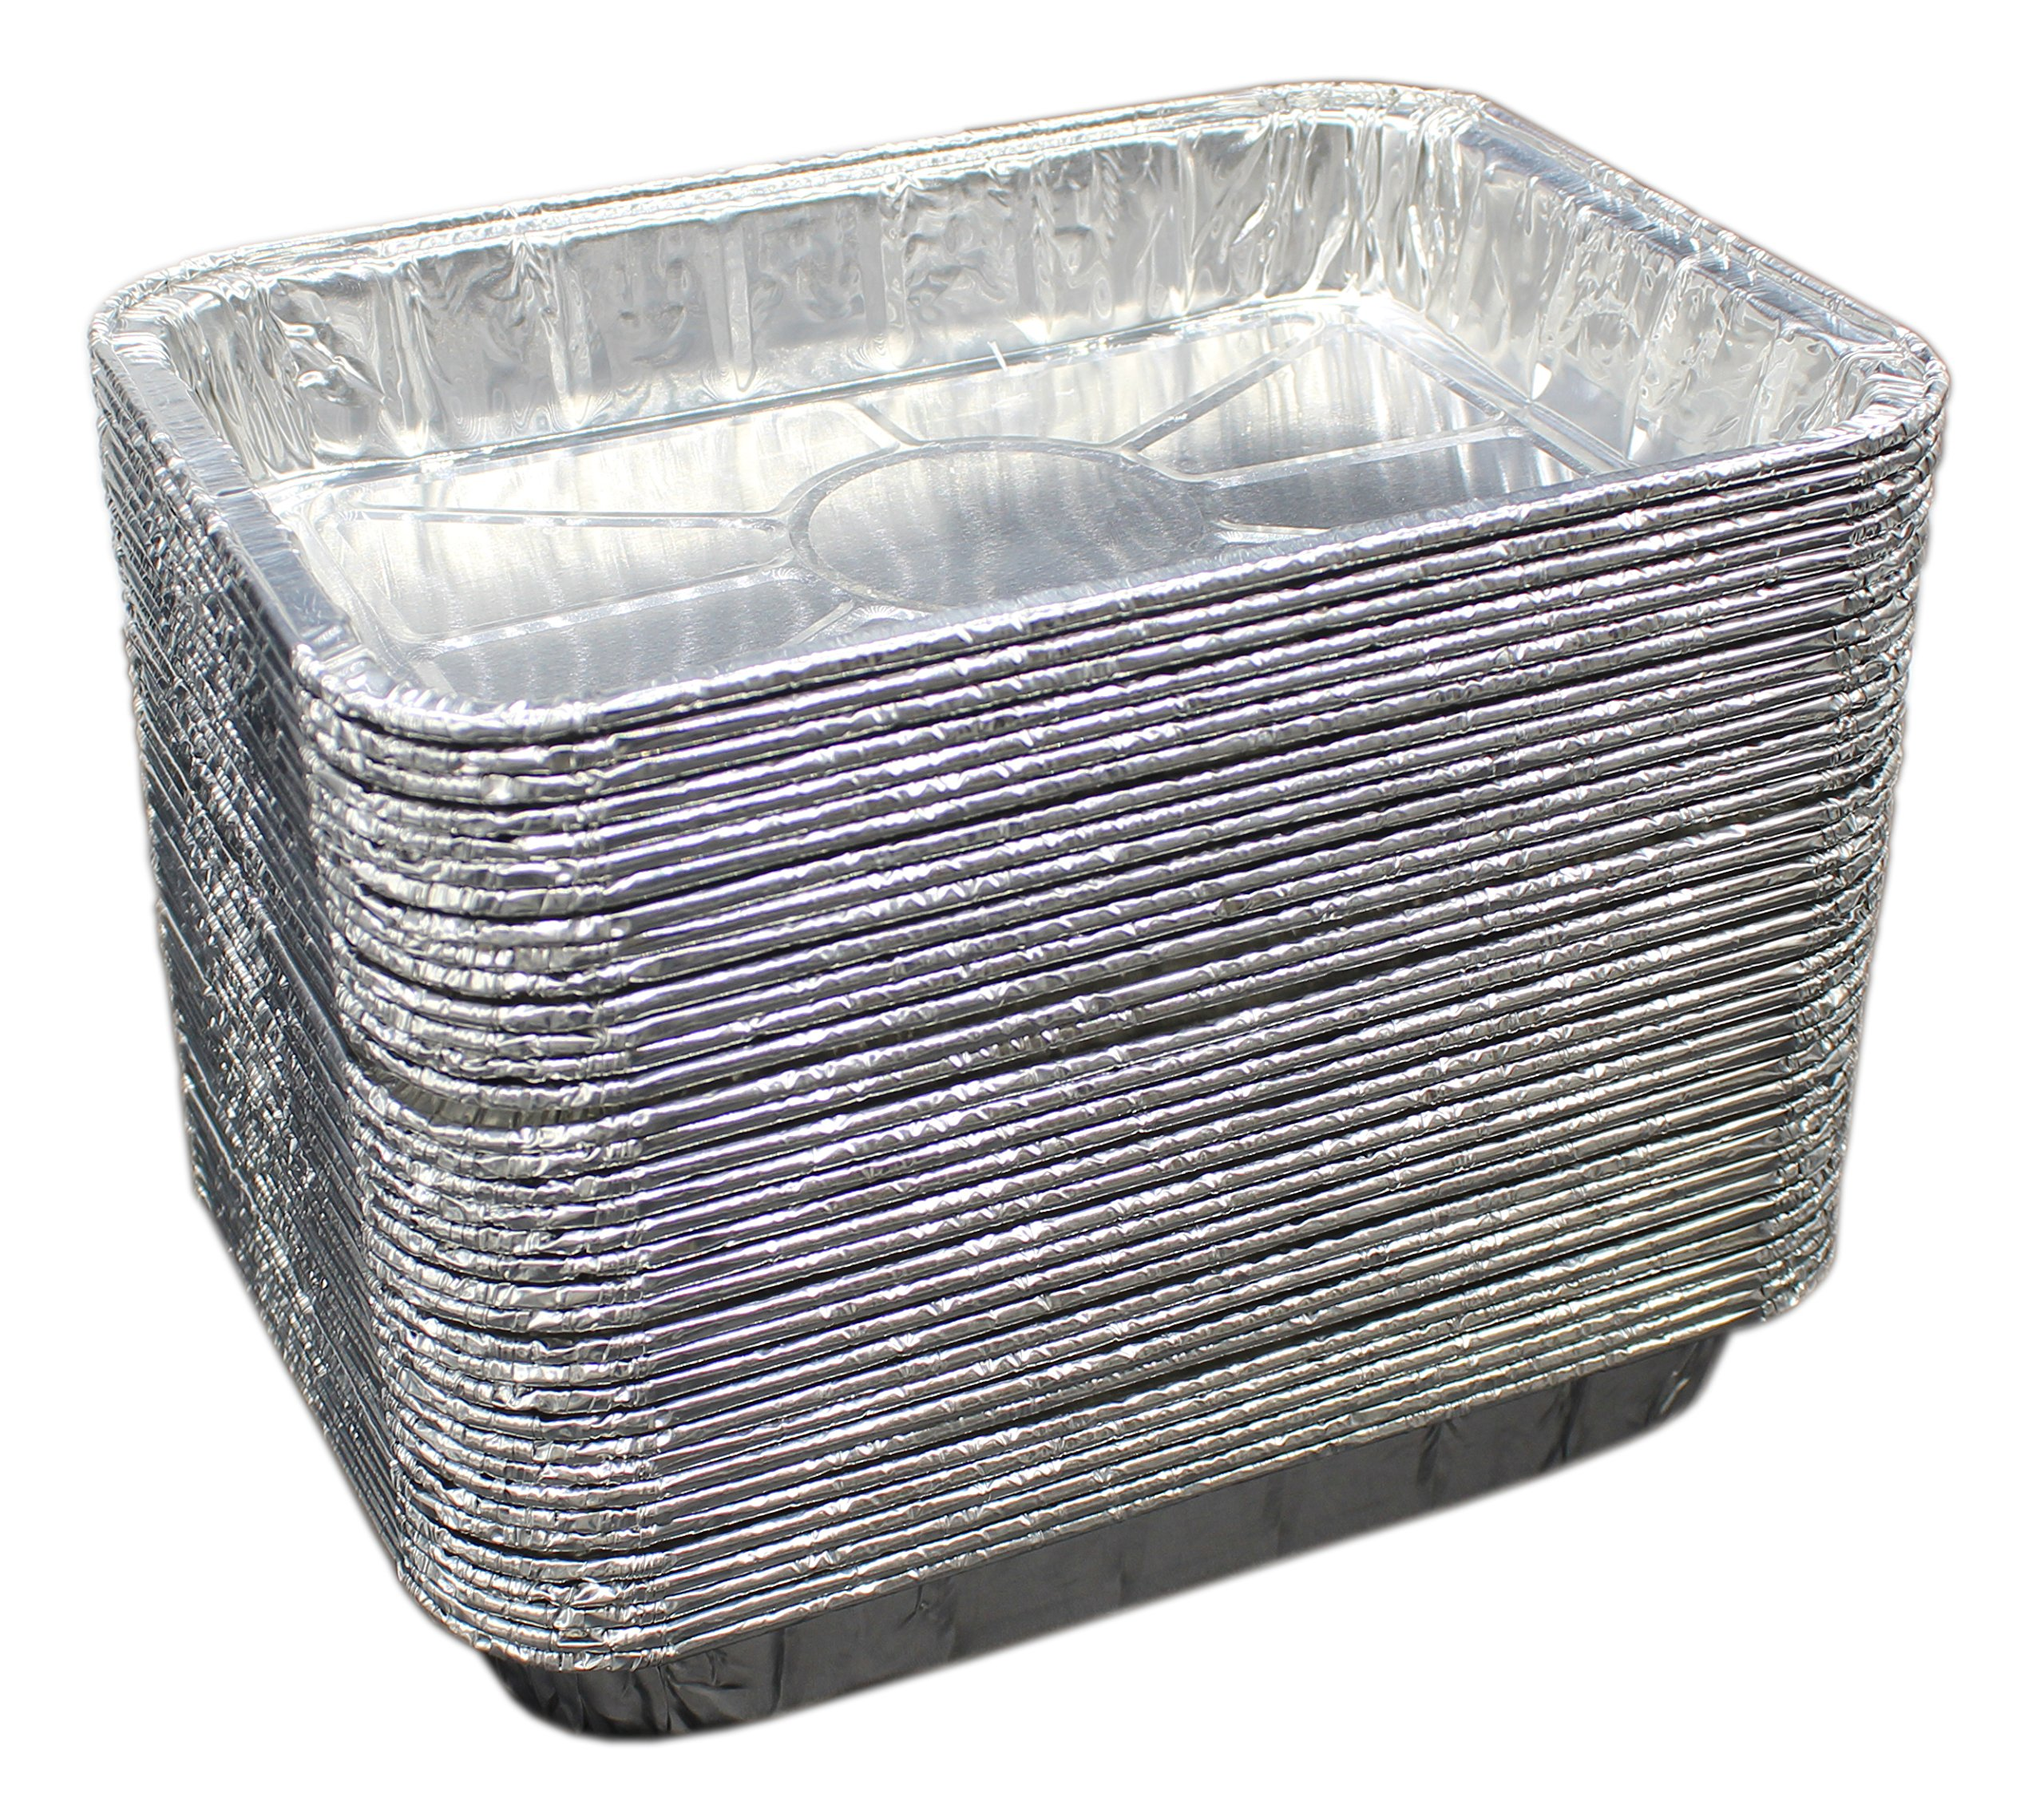 Aluminum Foil Grill Drip Pans - Bulk Pack of Durable Grill Trays – Disposable BBQ Grease Pans – Compatible with Weber Grills - Made in The USA - Also Great for Baking, Roasting & Cooking (Pack of 50) by MontoPack (Image #2)